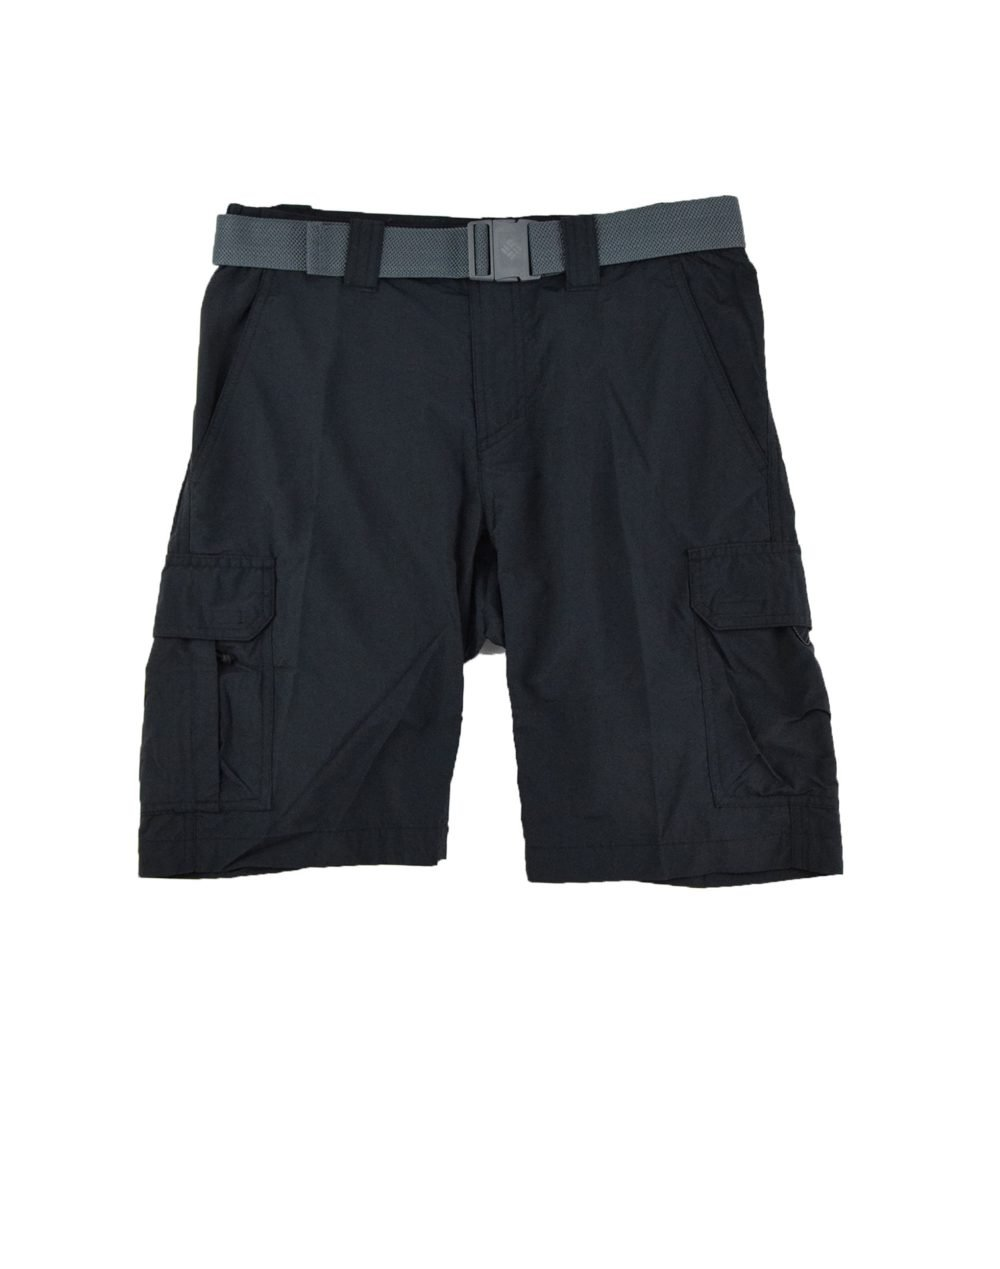 Columbia Silver Ridge II Cargo Short (XO0663-010) Black